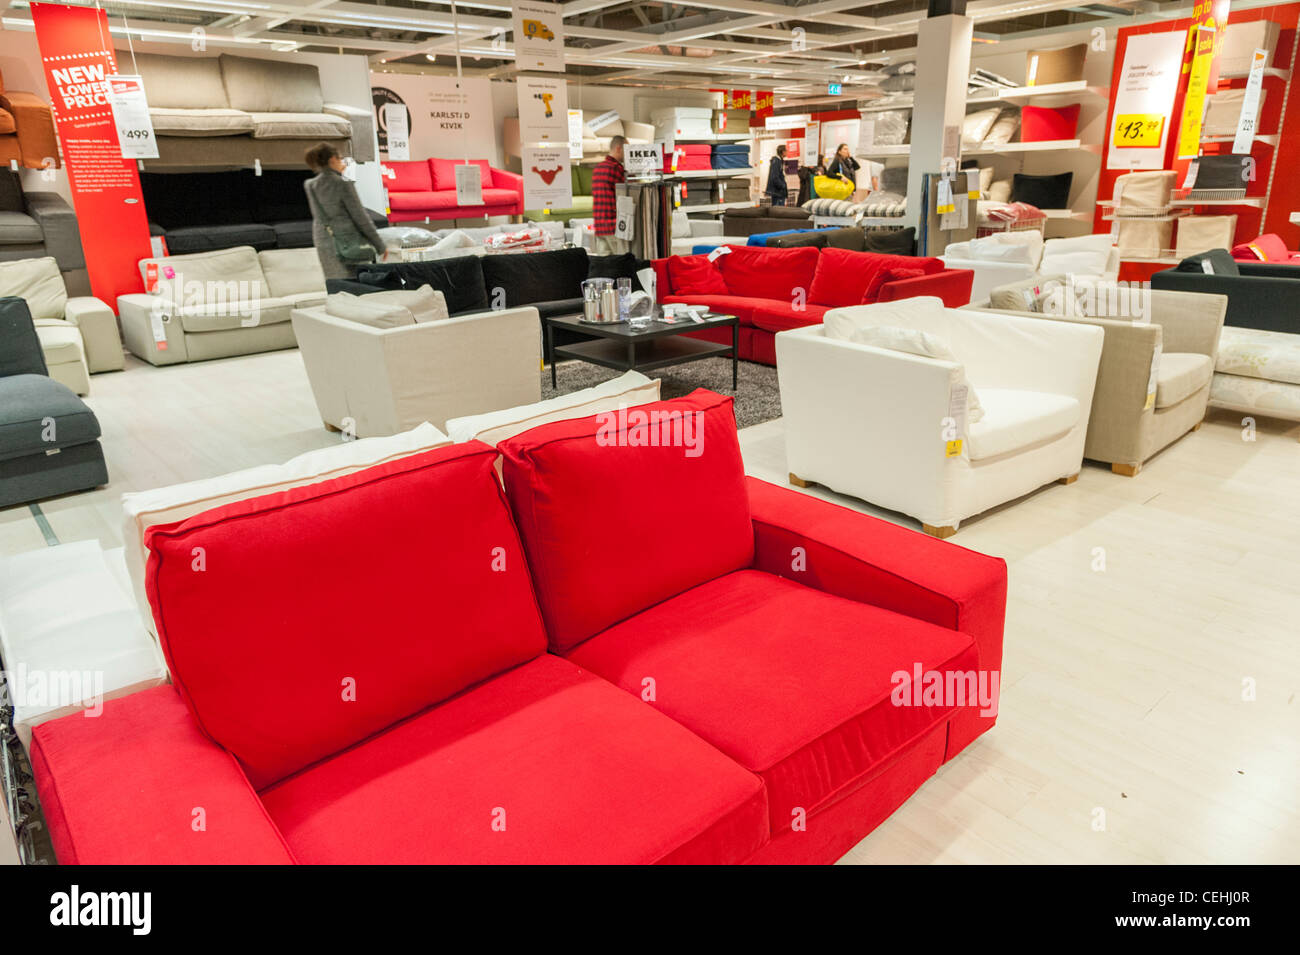 ikea sofa stock photos ikea sofa stock images alamy. Black Bedroom Furniture Sets. Home Design Ideas